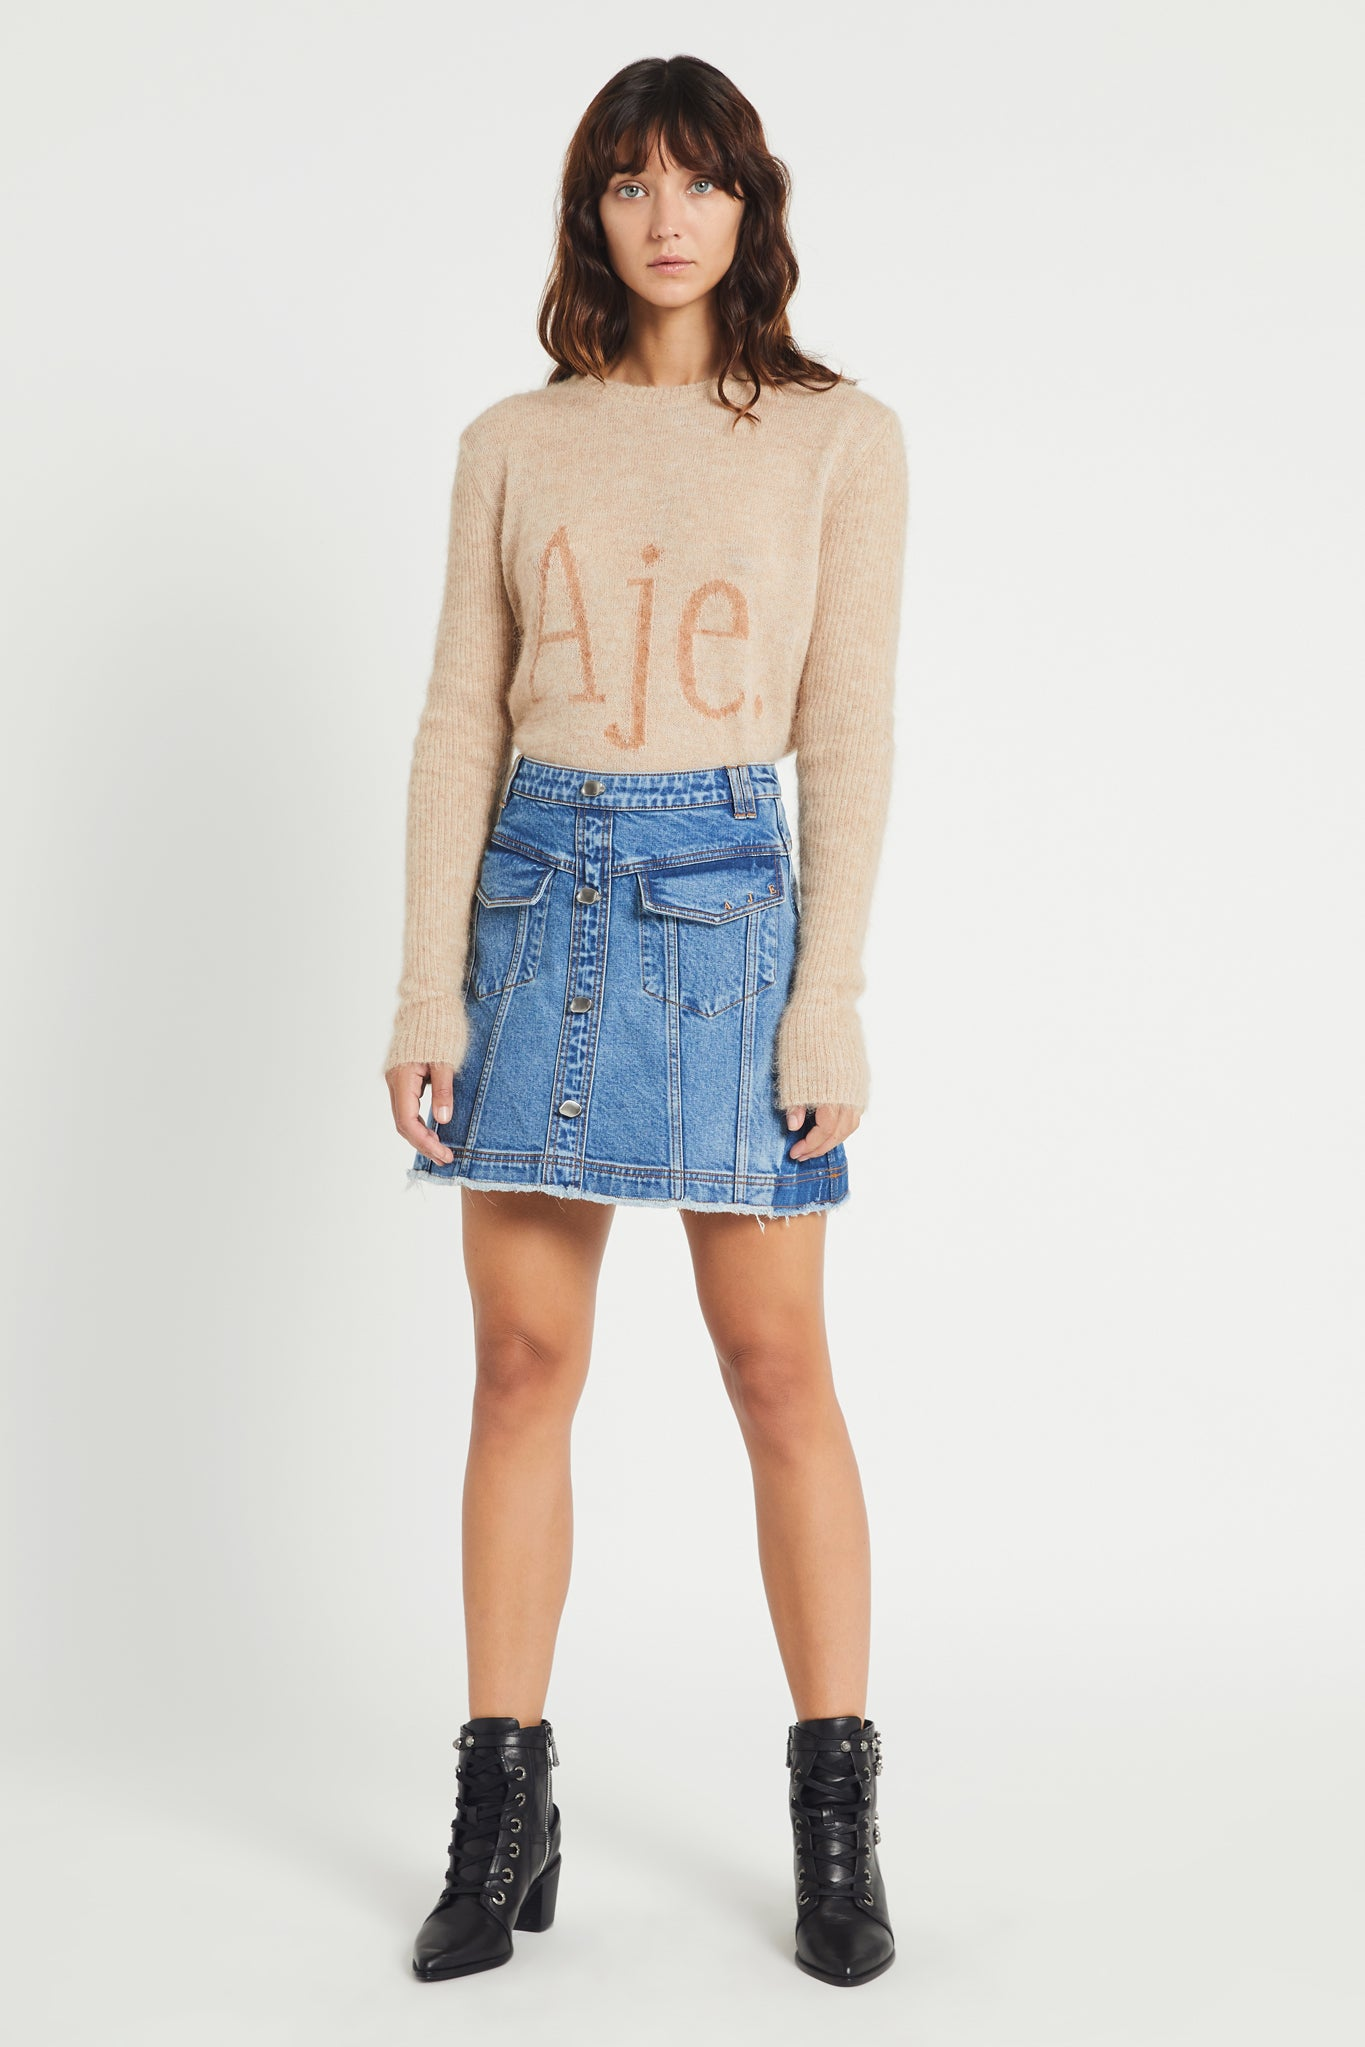 Lennie Jumper Outfit View